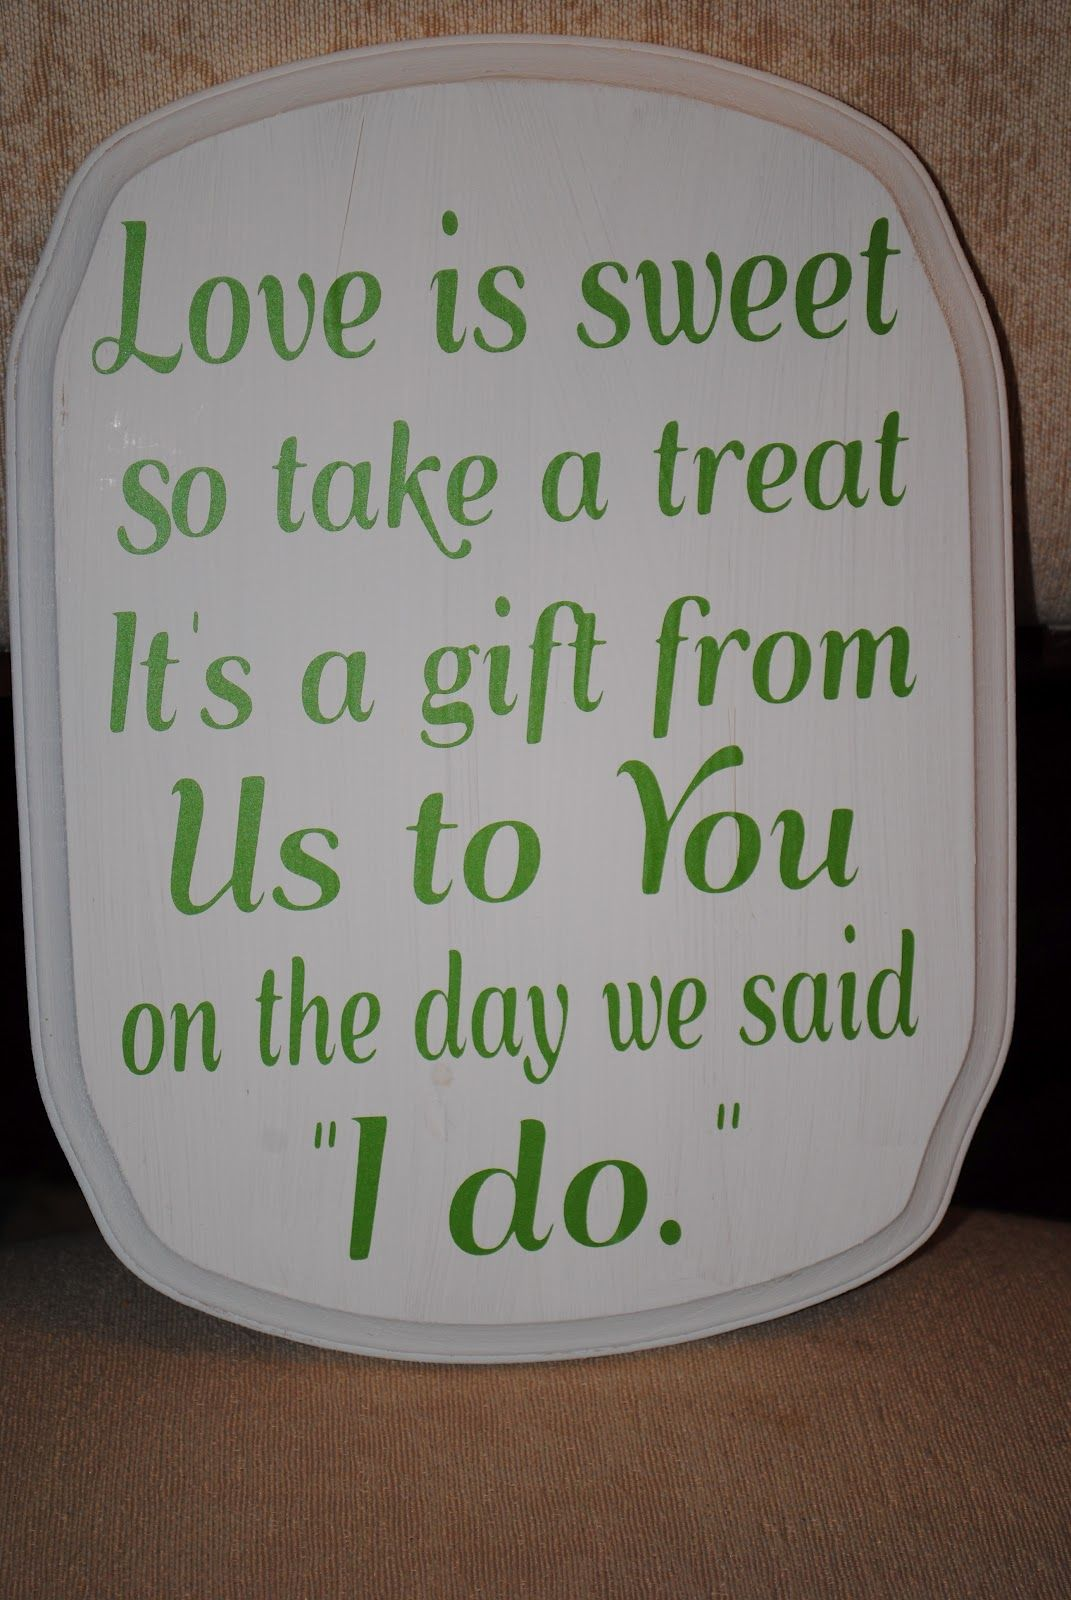 Wedding Candy Buffet Signs Another Small Sign For A Ring Bearer To Carry In